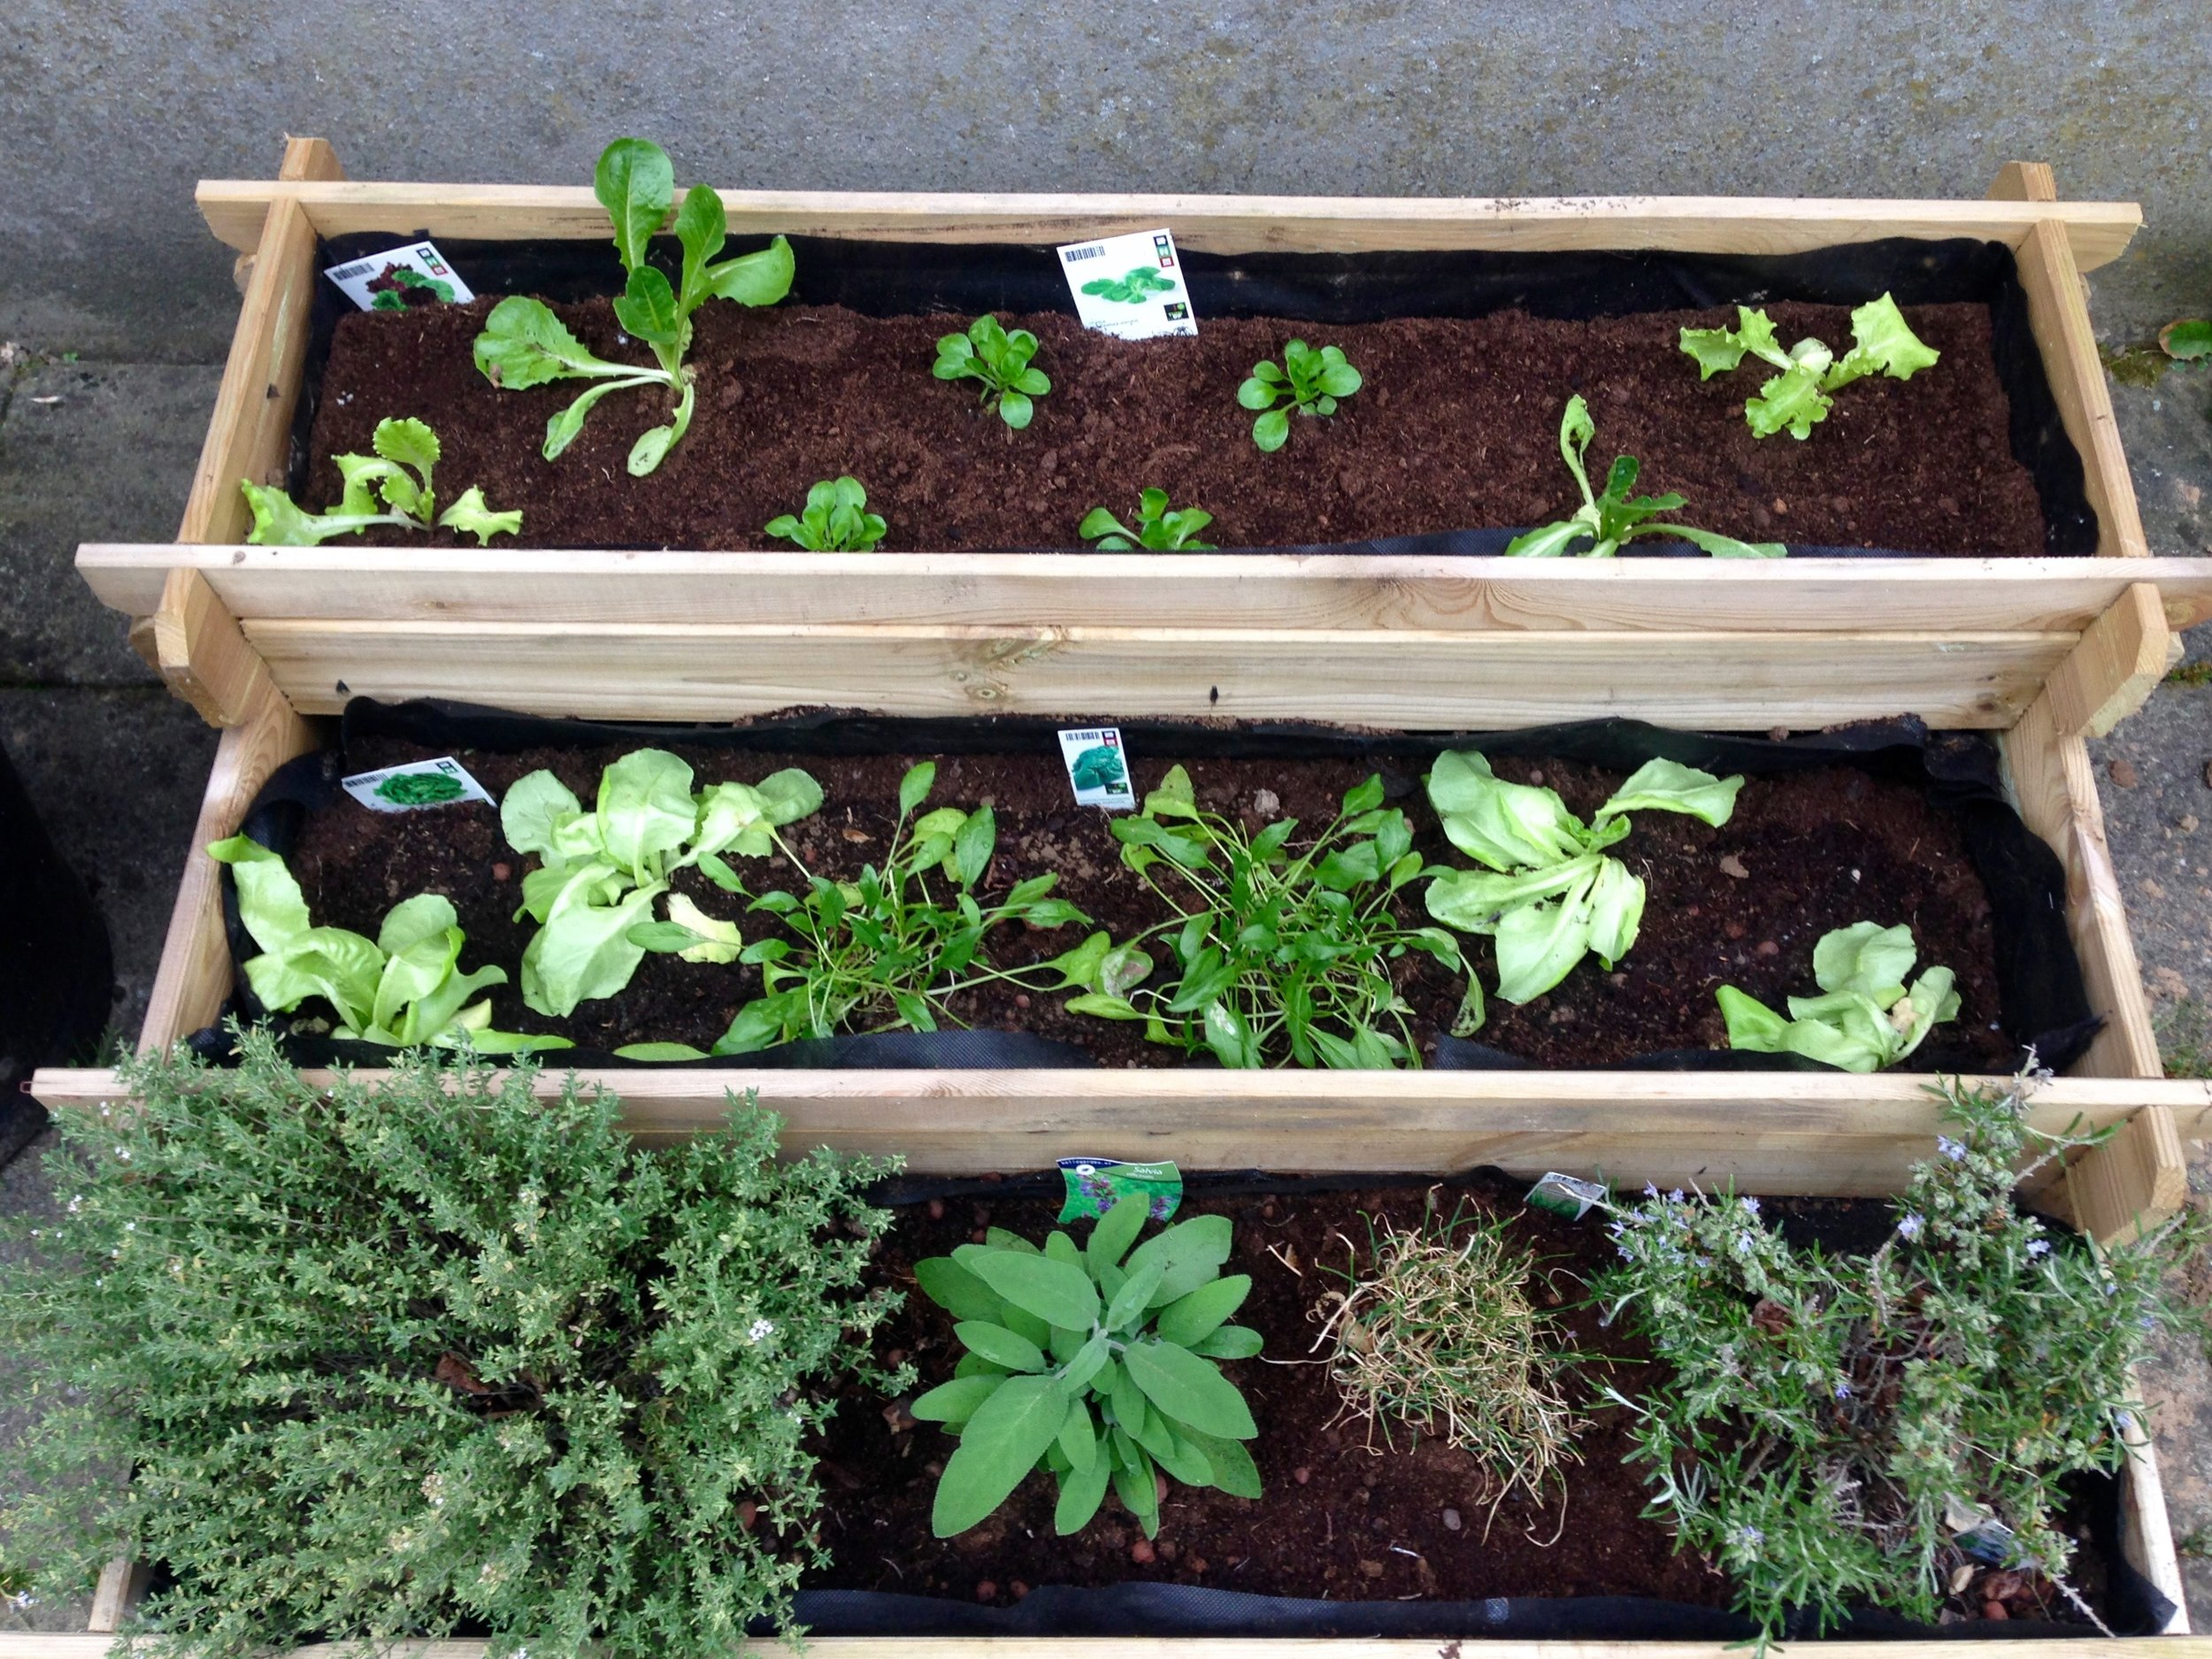 Several types of lettuce, spinach, and some assorted herbs (thyme, sage, chives, & rosemary)